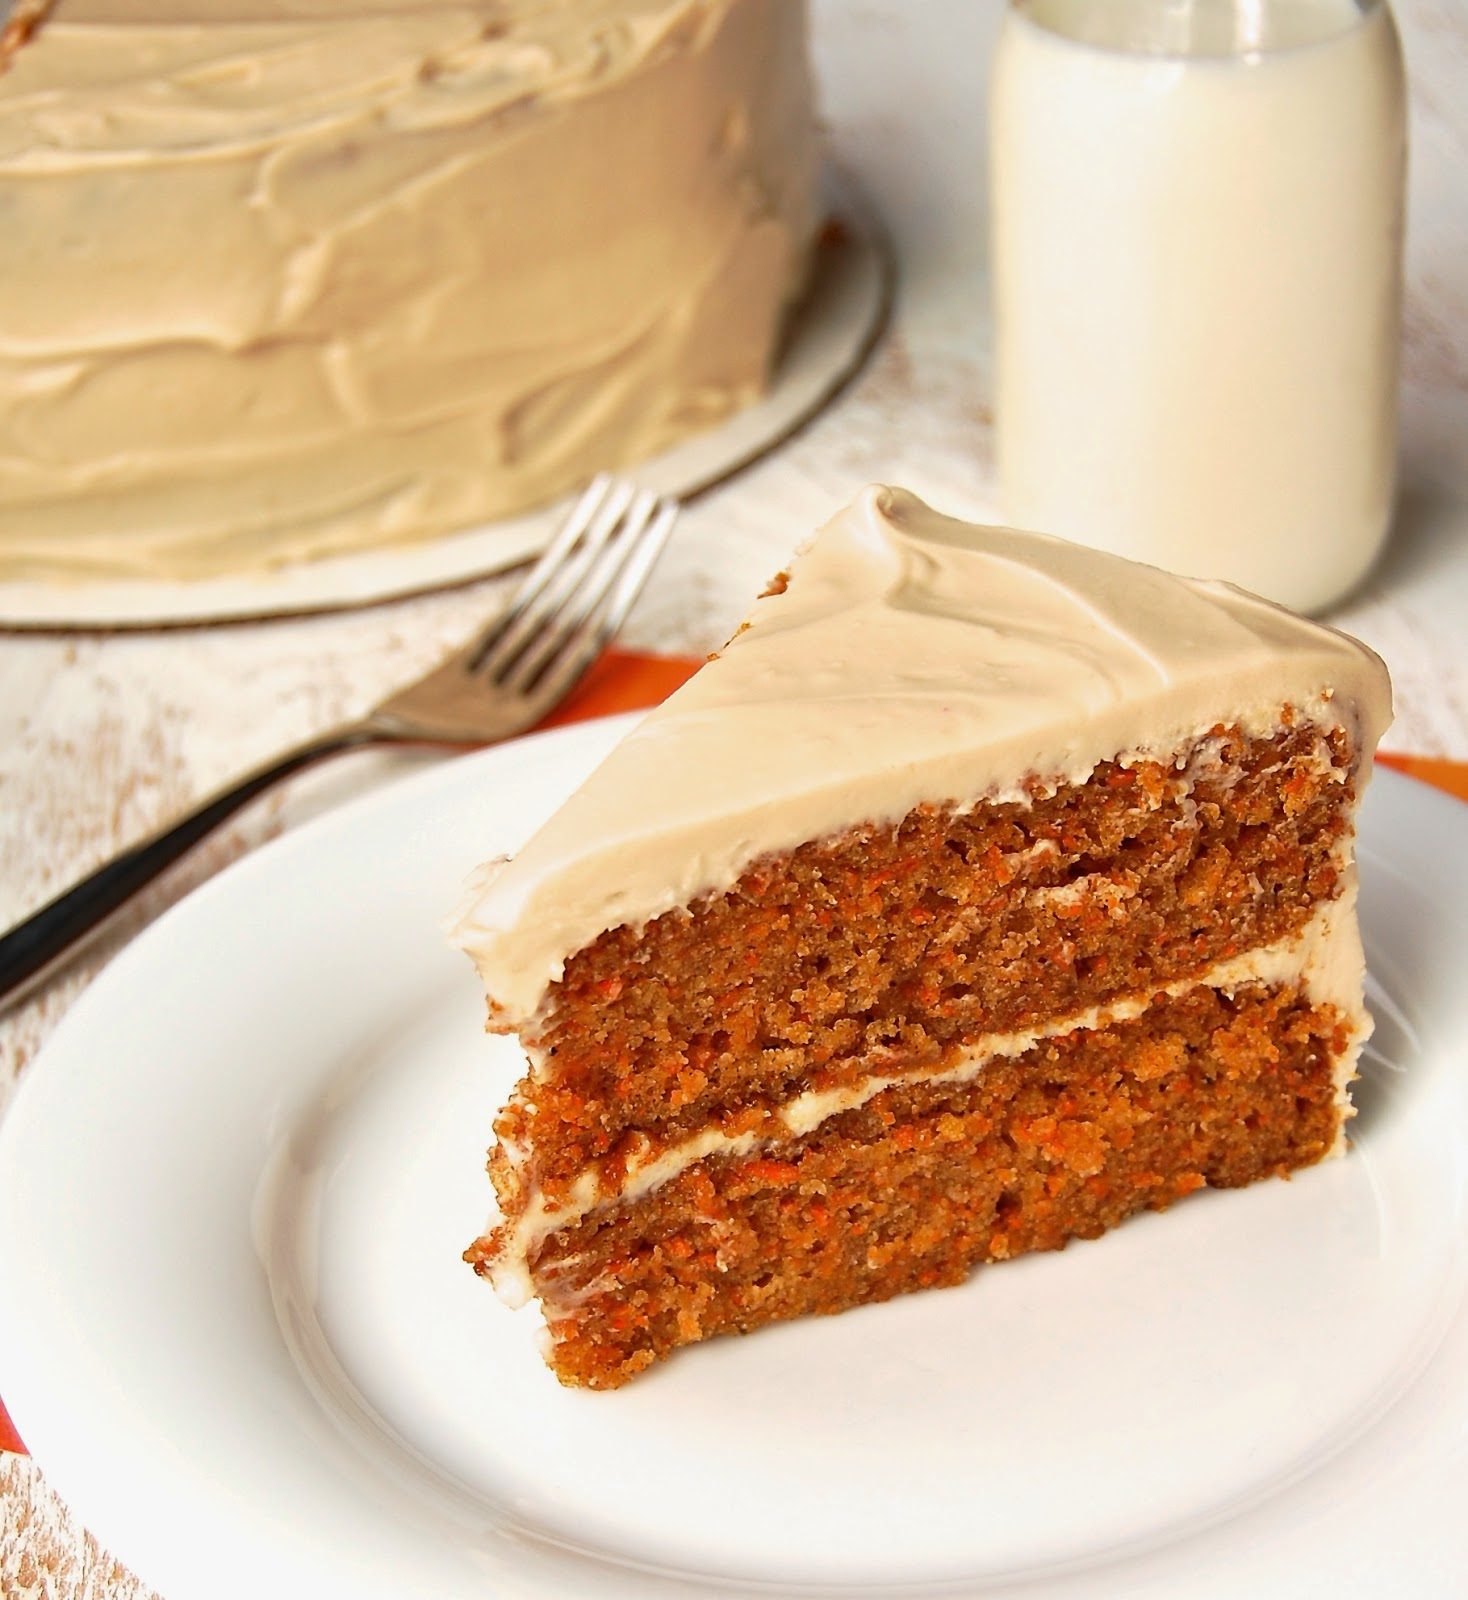 Much Kneaded: Gluten-Free Carrot Cake with Maple Cream Cheese Frosting